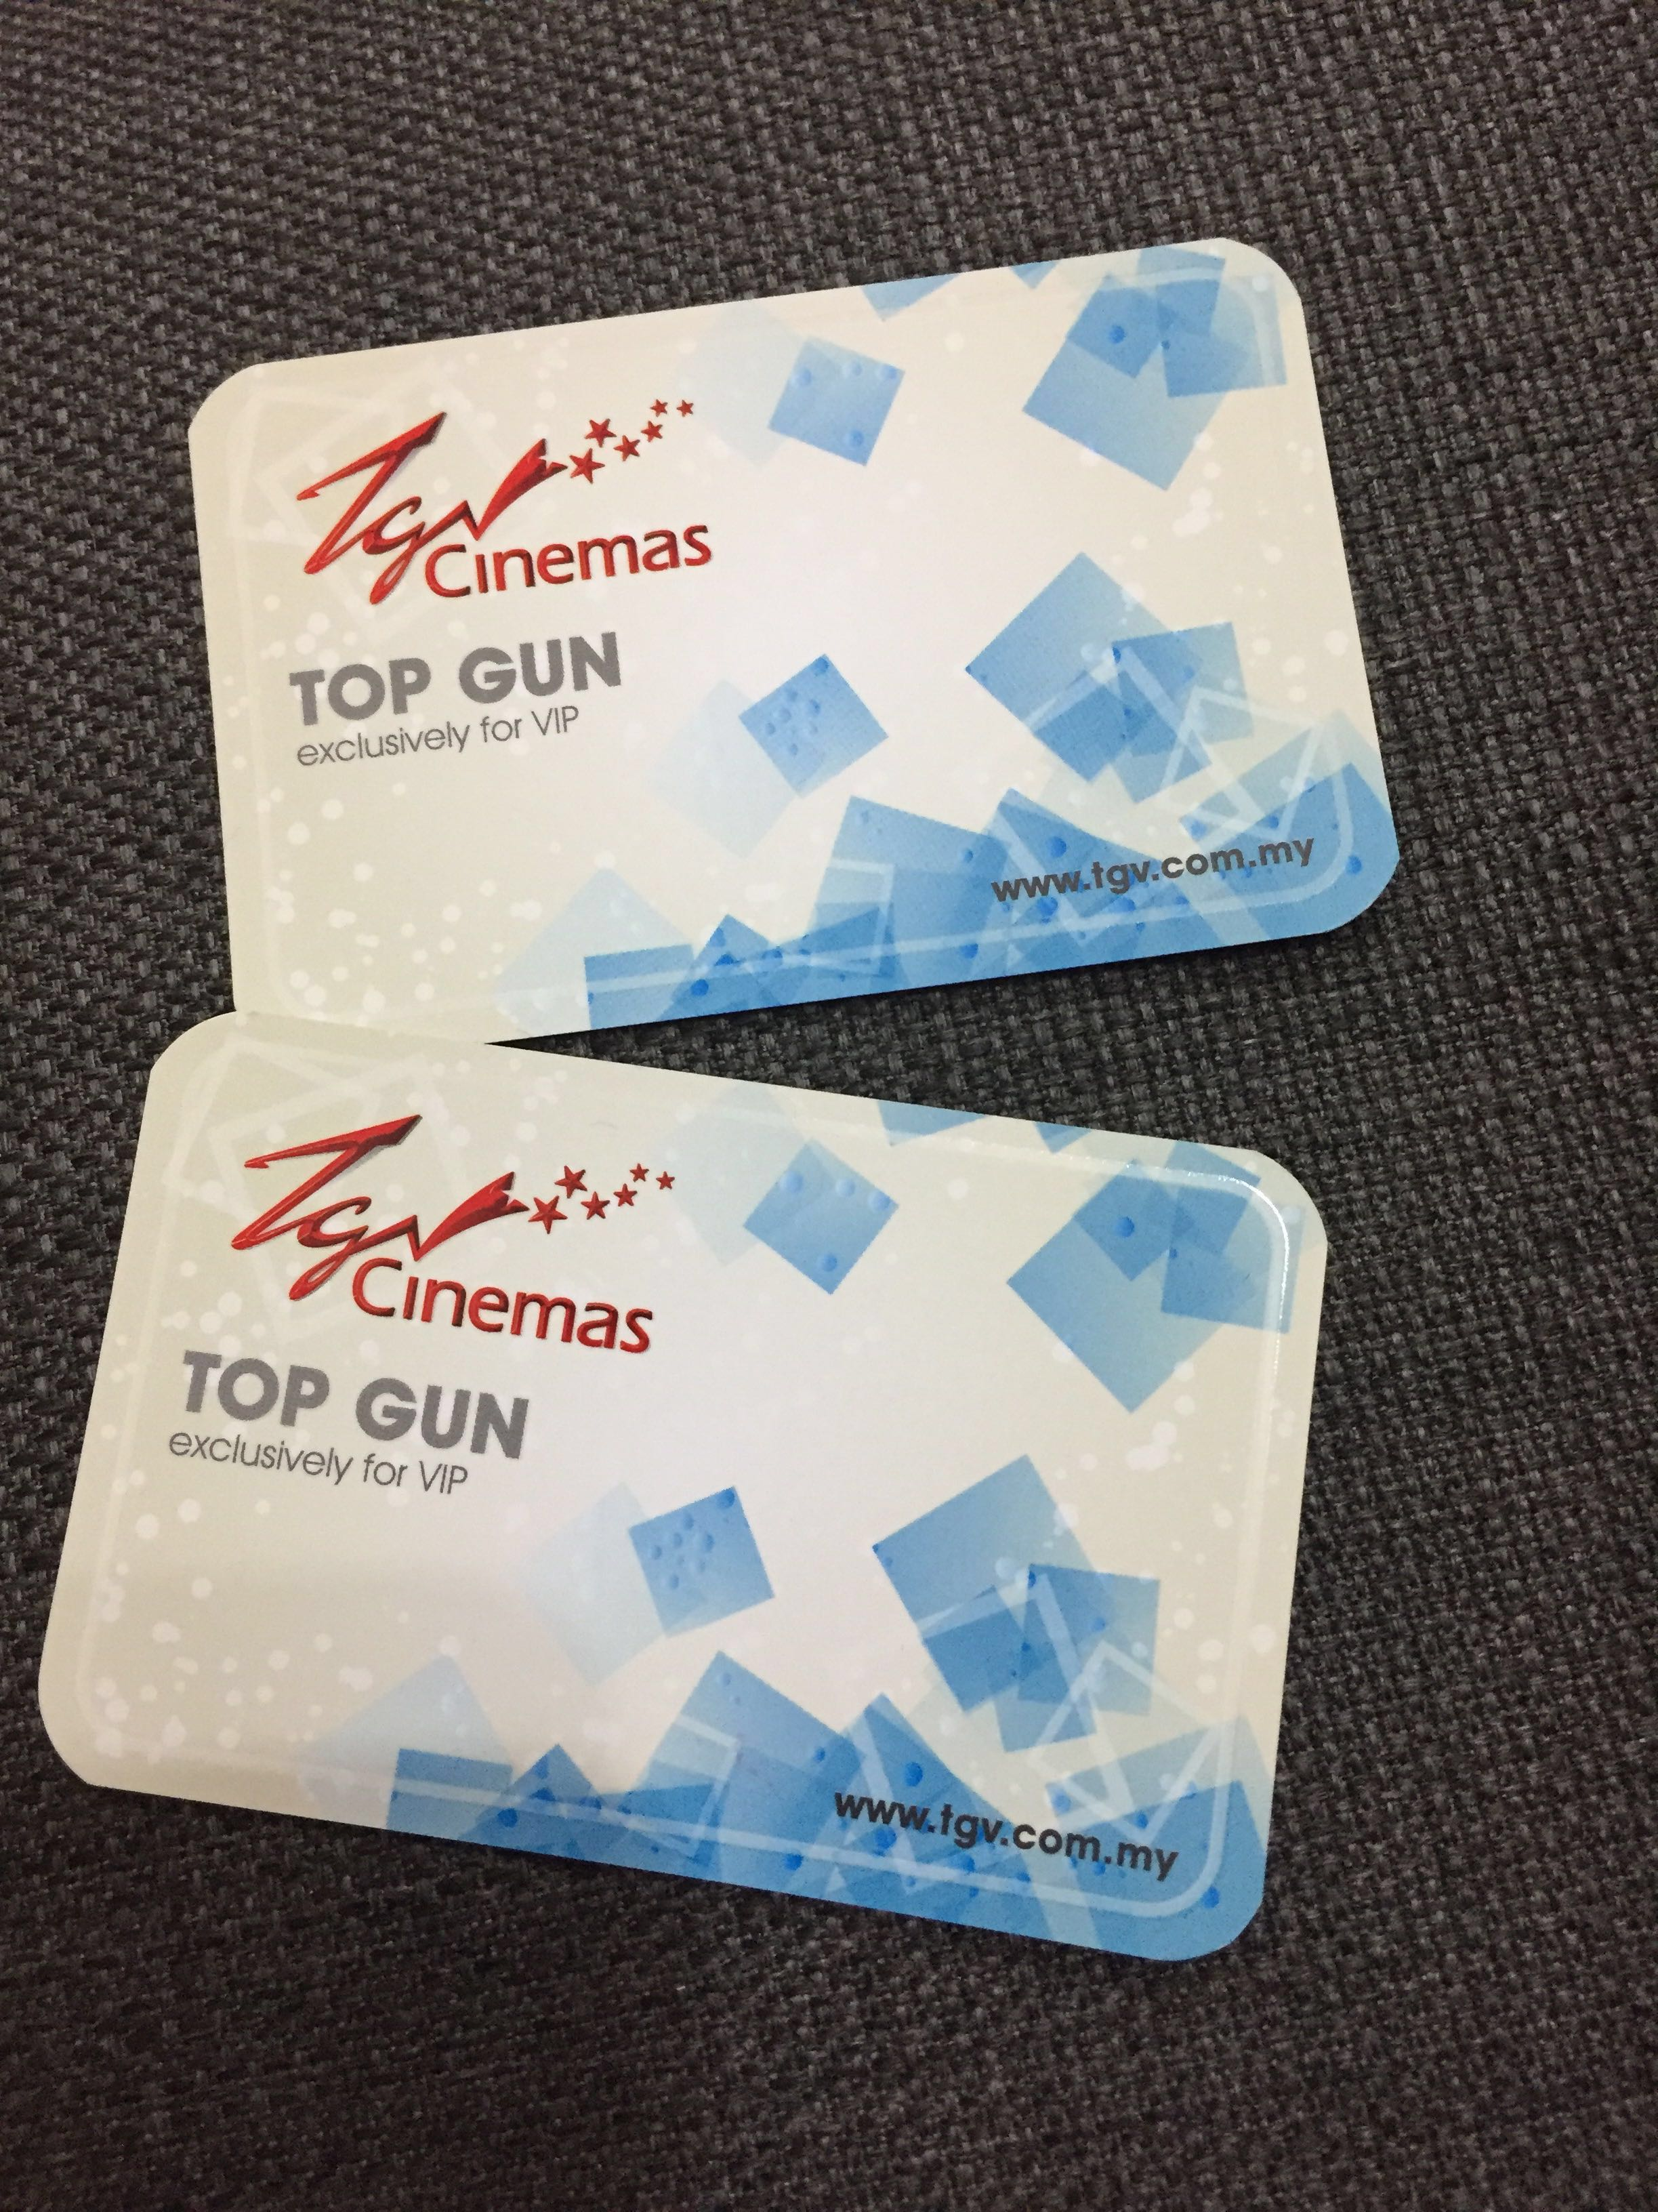 Tgv Movies Ticket 2 Pax Post1111 Blackfriday Blackfriday100